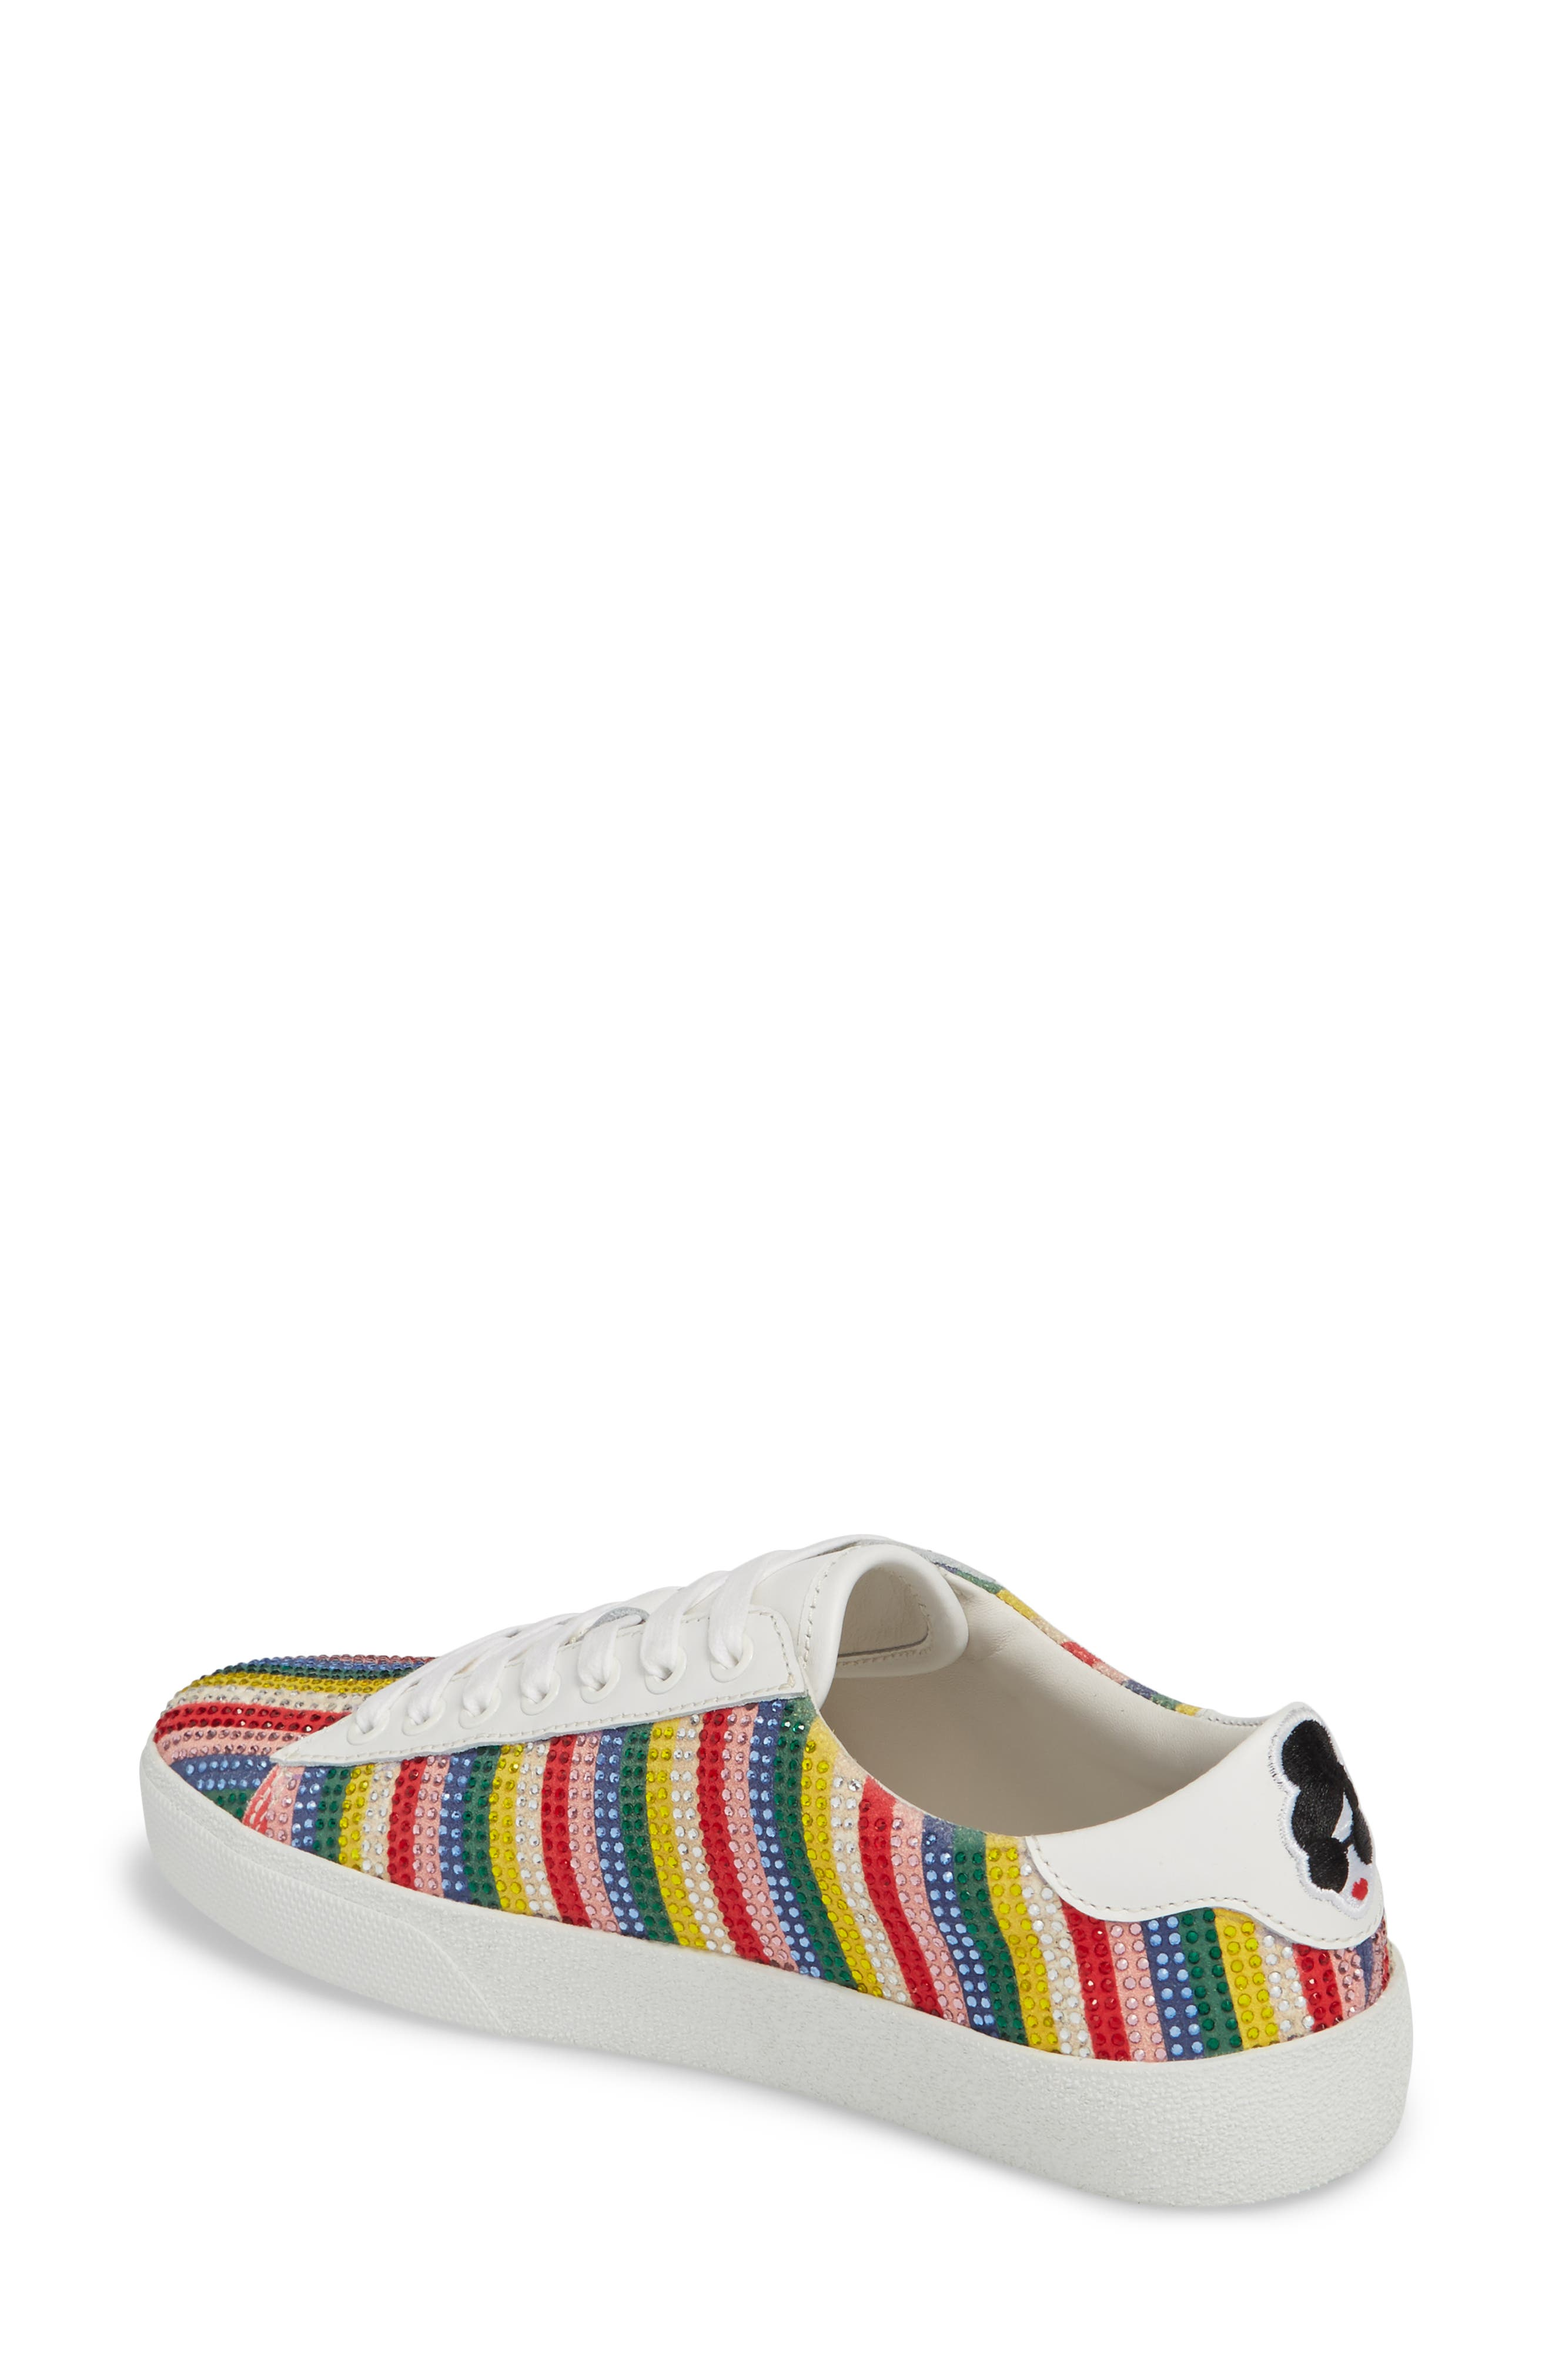 Cassidy Crystal Embellished Sneaker,                             Alternate thumbnail 2, color,